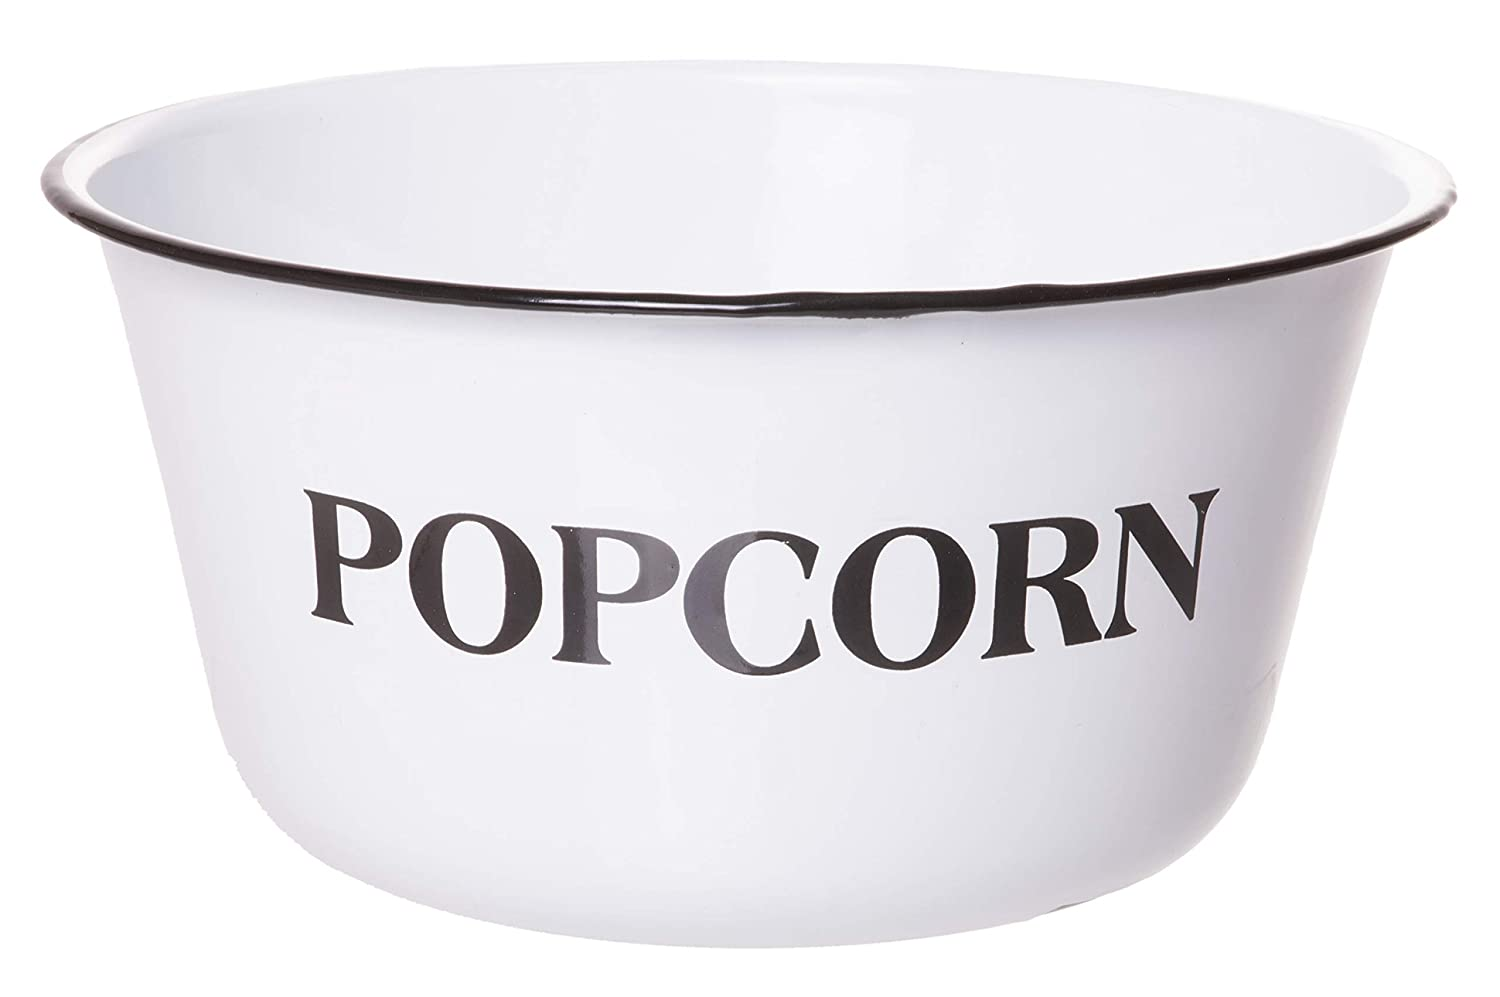 Red Co. Extra Large Enamel Popcorn Bowl, Mixing & Serving Container, White with Distressed Black Accents, 4 Quart